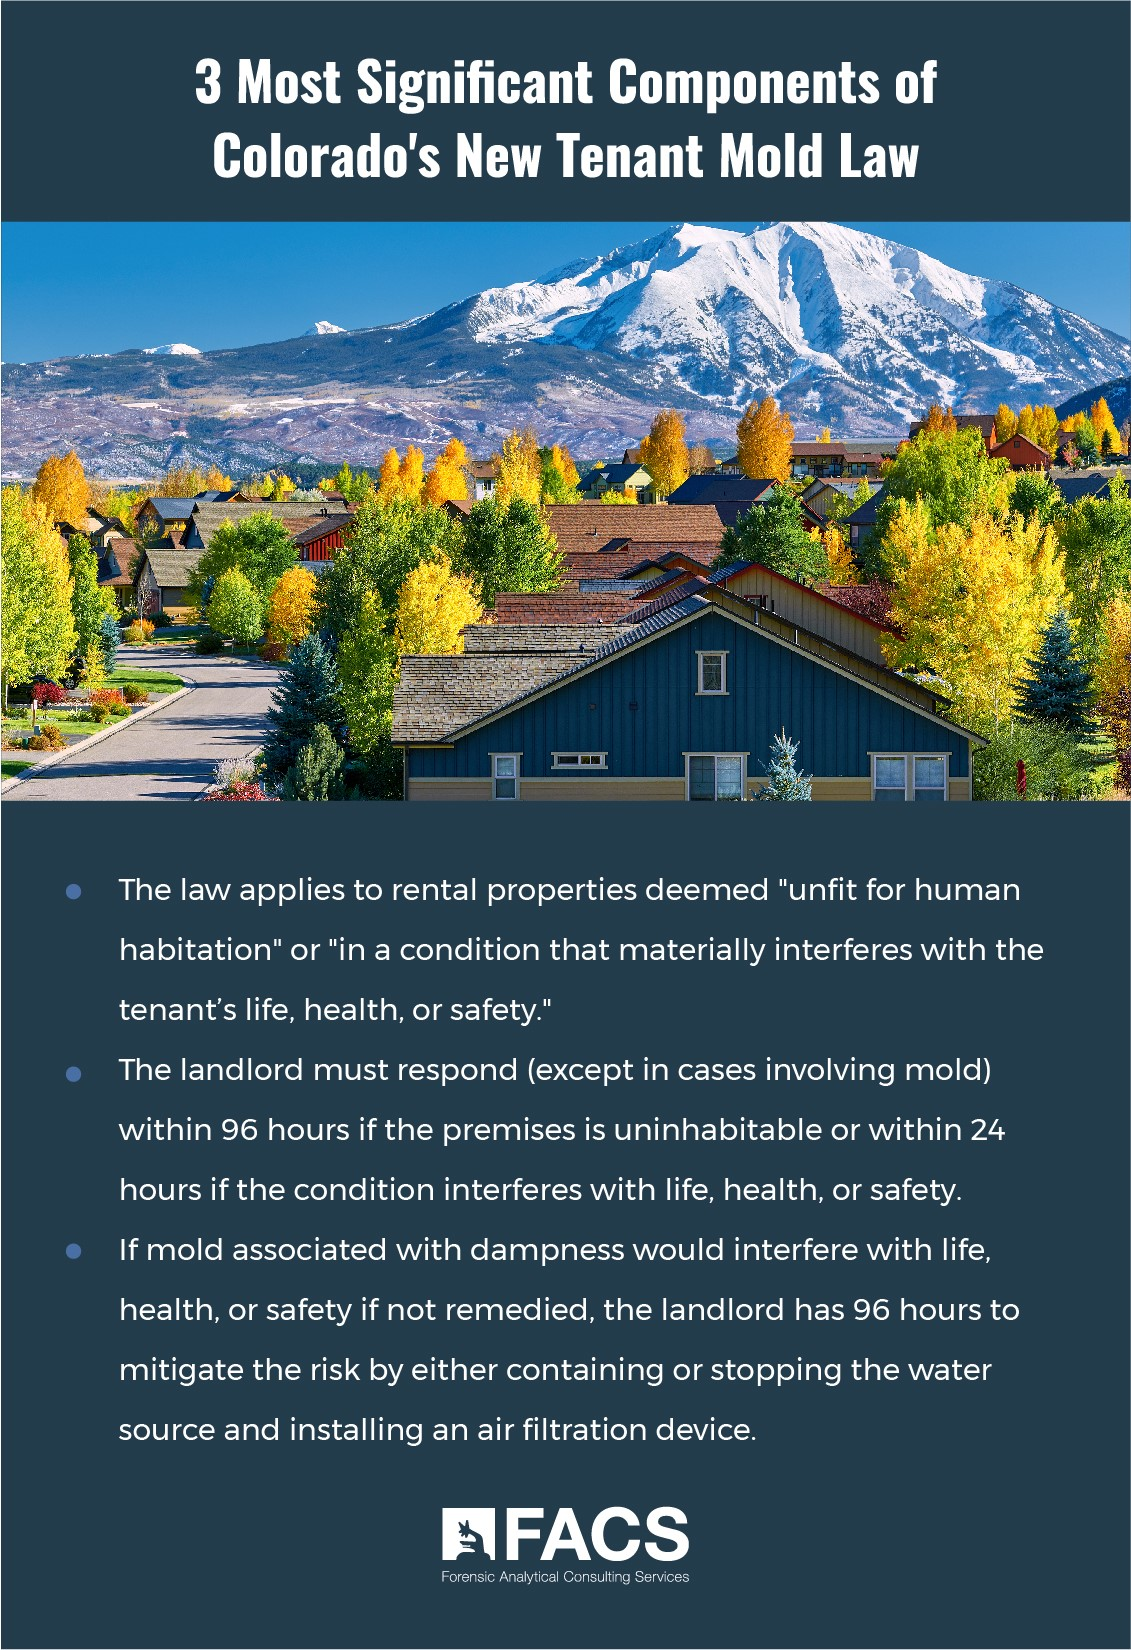 3 Most Significant Components of Colorado's New Tenant Mold Law